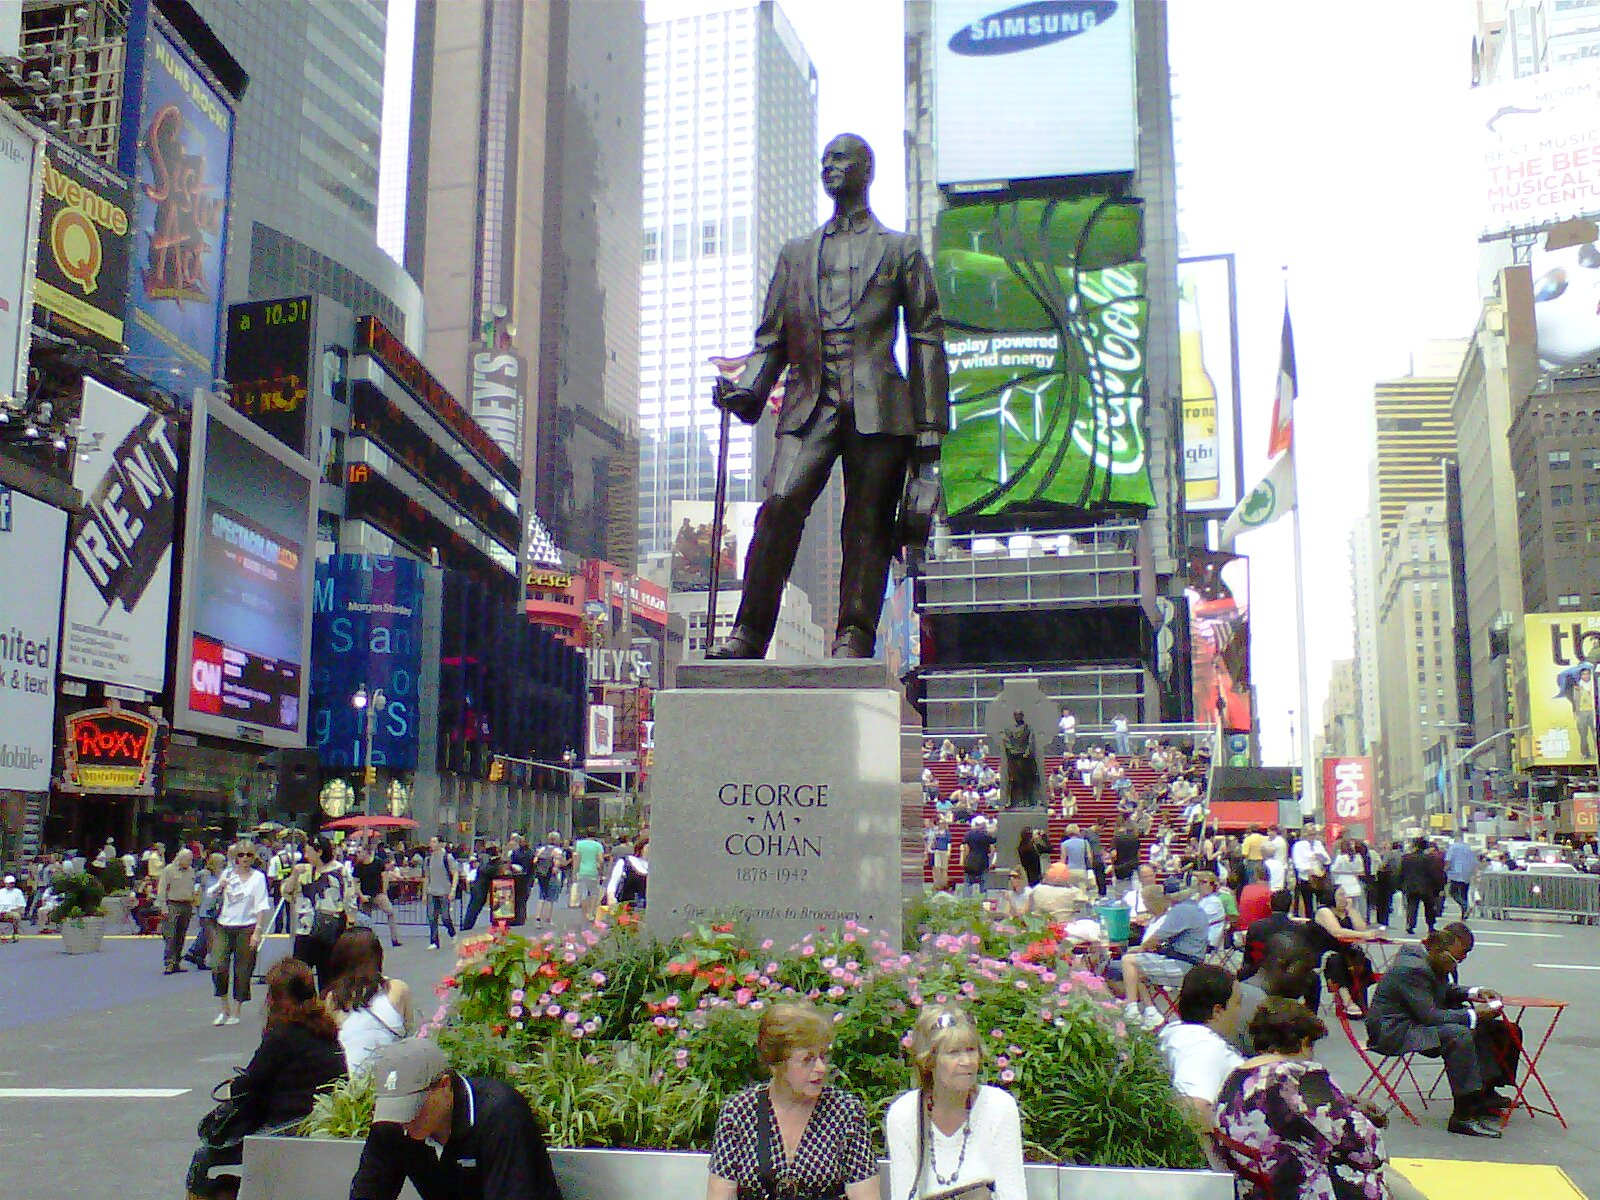 George M. Cohan Statue, Times Square